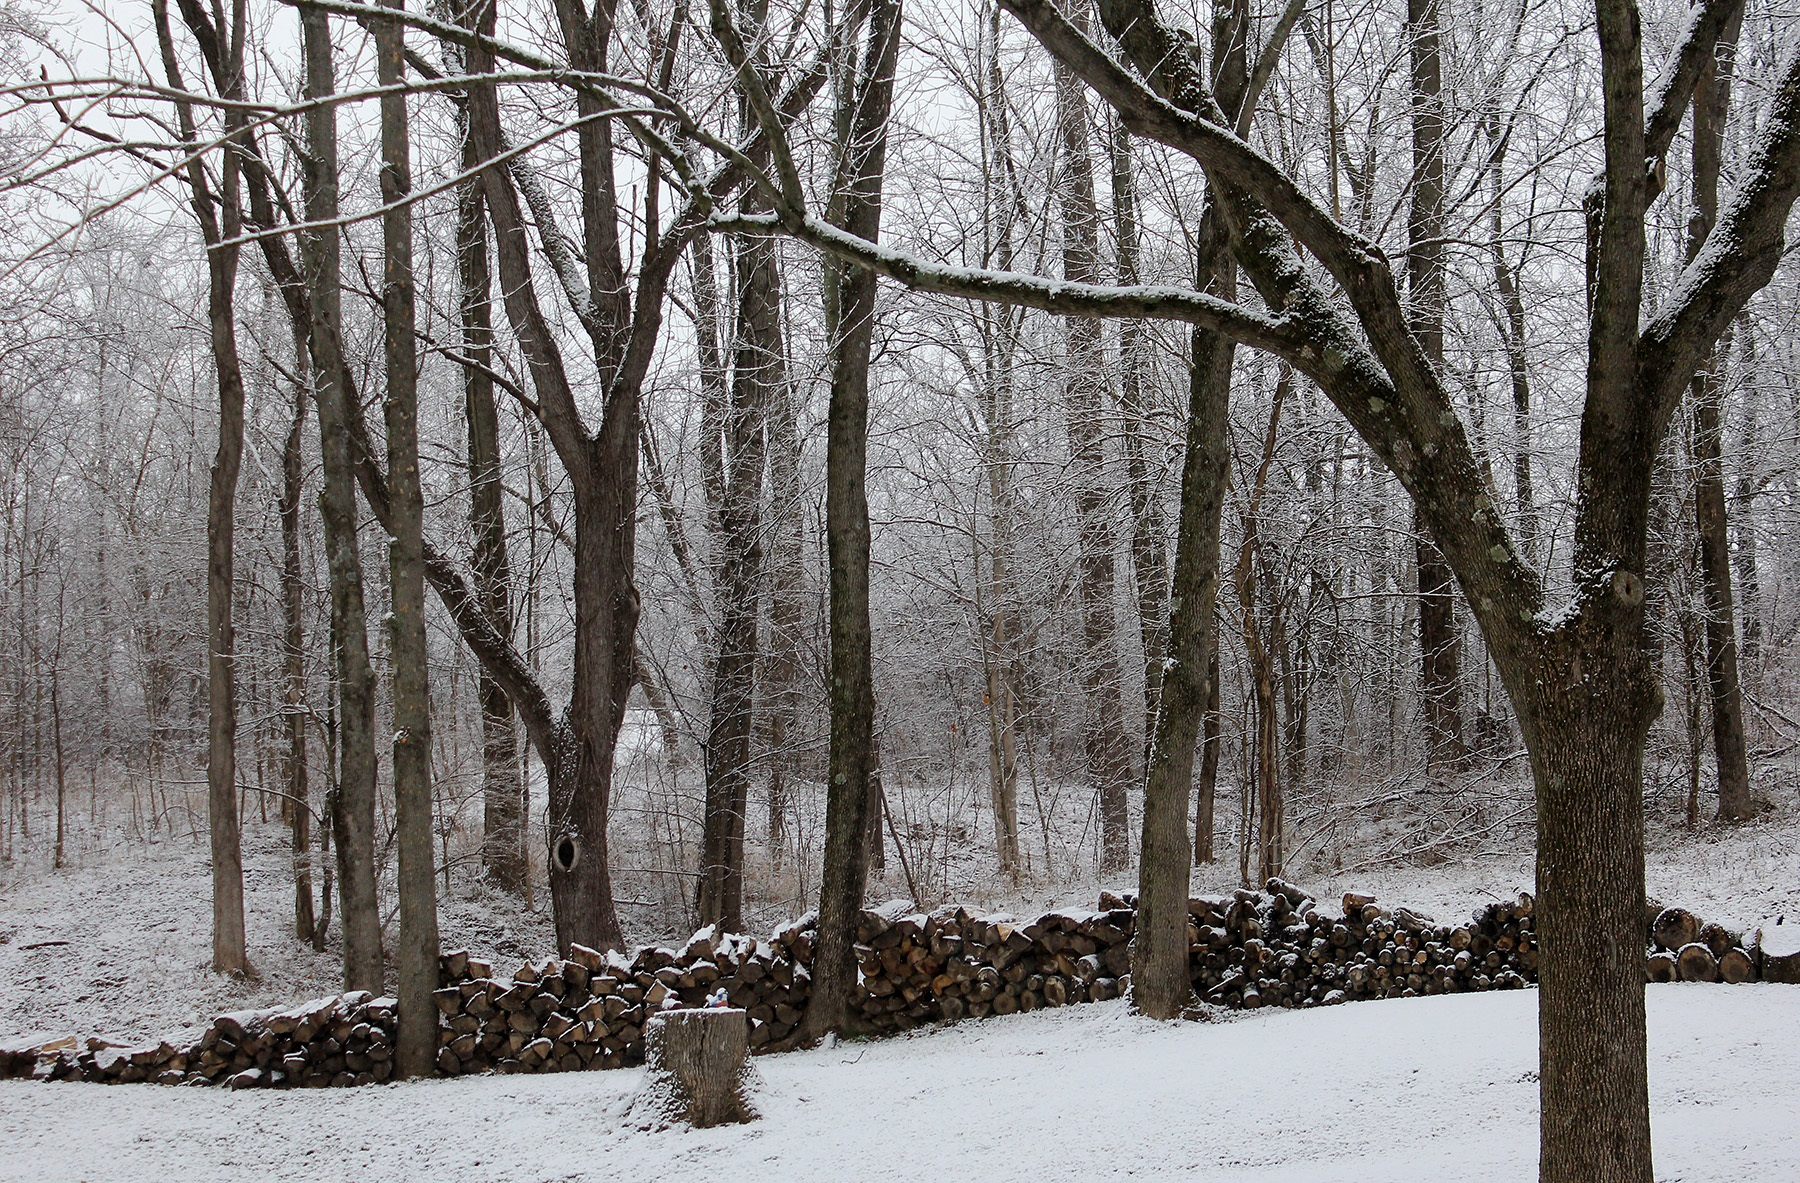 Wet snow blankets a wood near Kennard, Indiana.